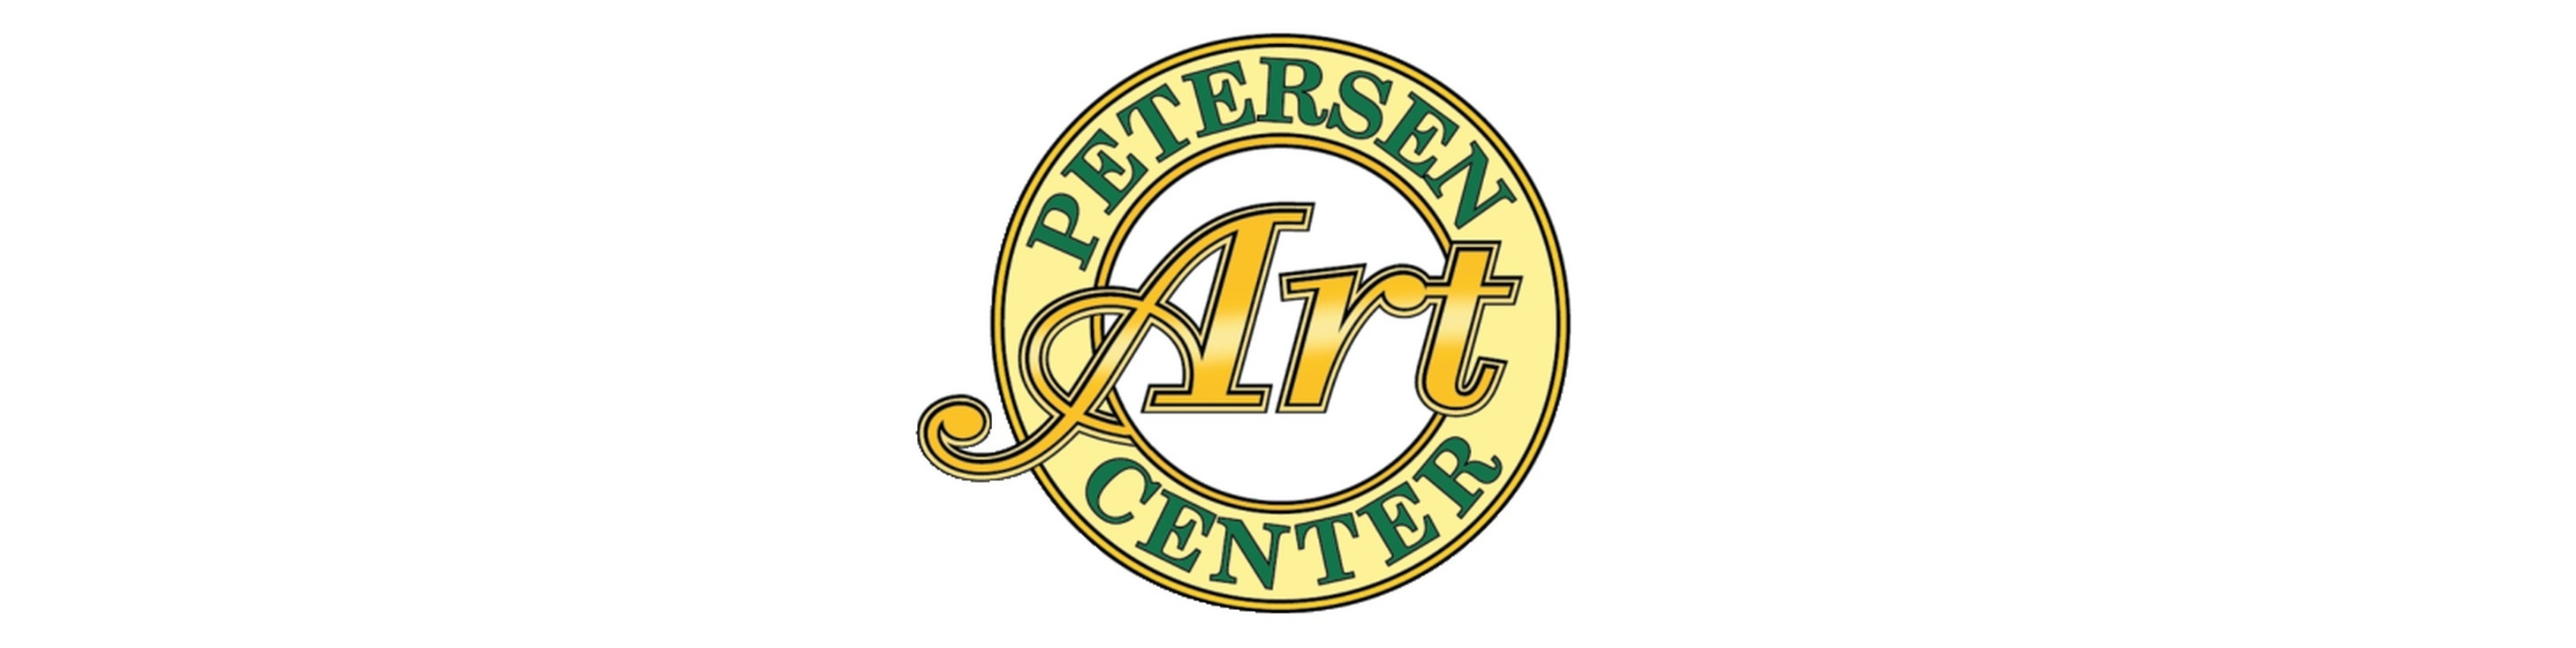 Petersen Art Center